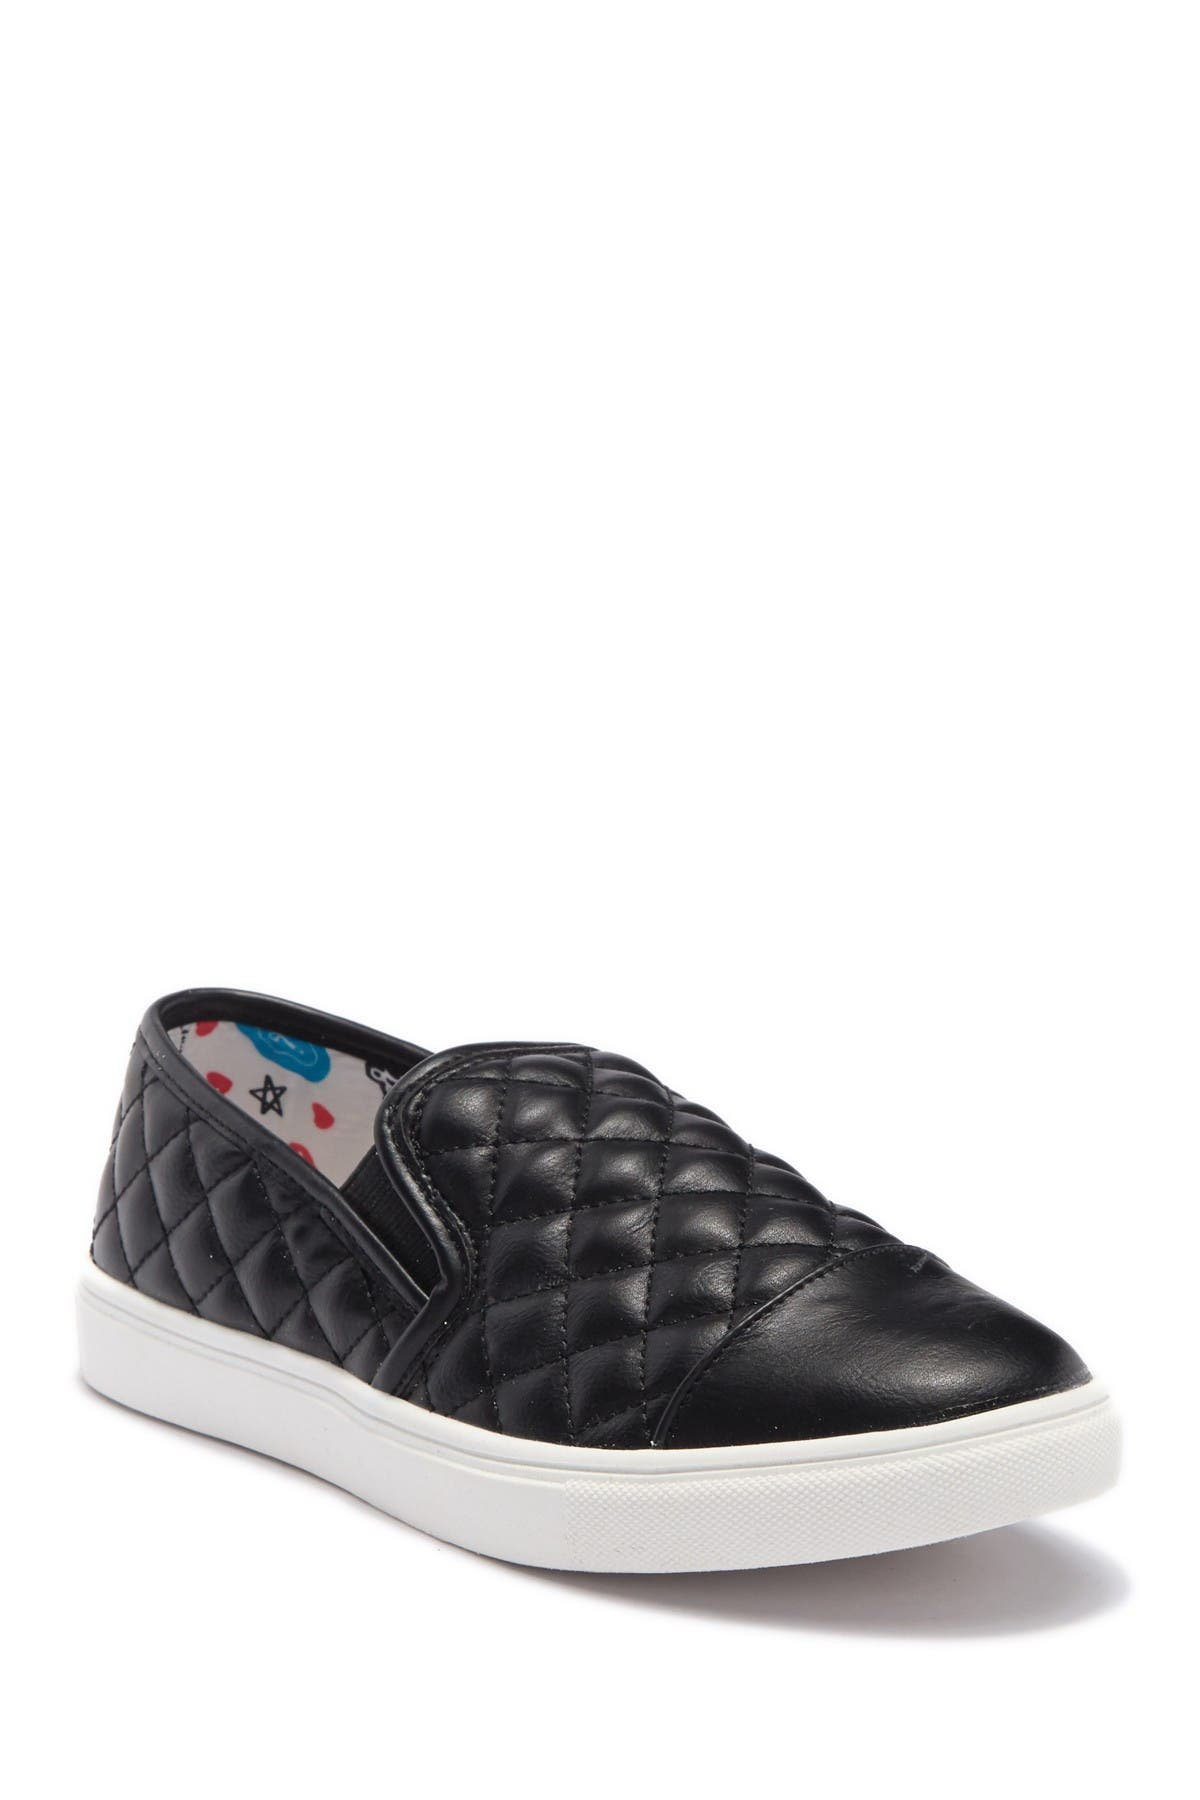 Image of Steve Madden Zaander Slip-On Sneaker